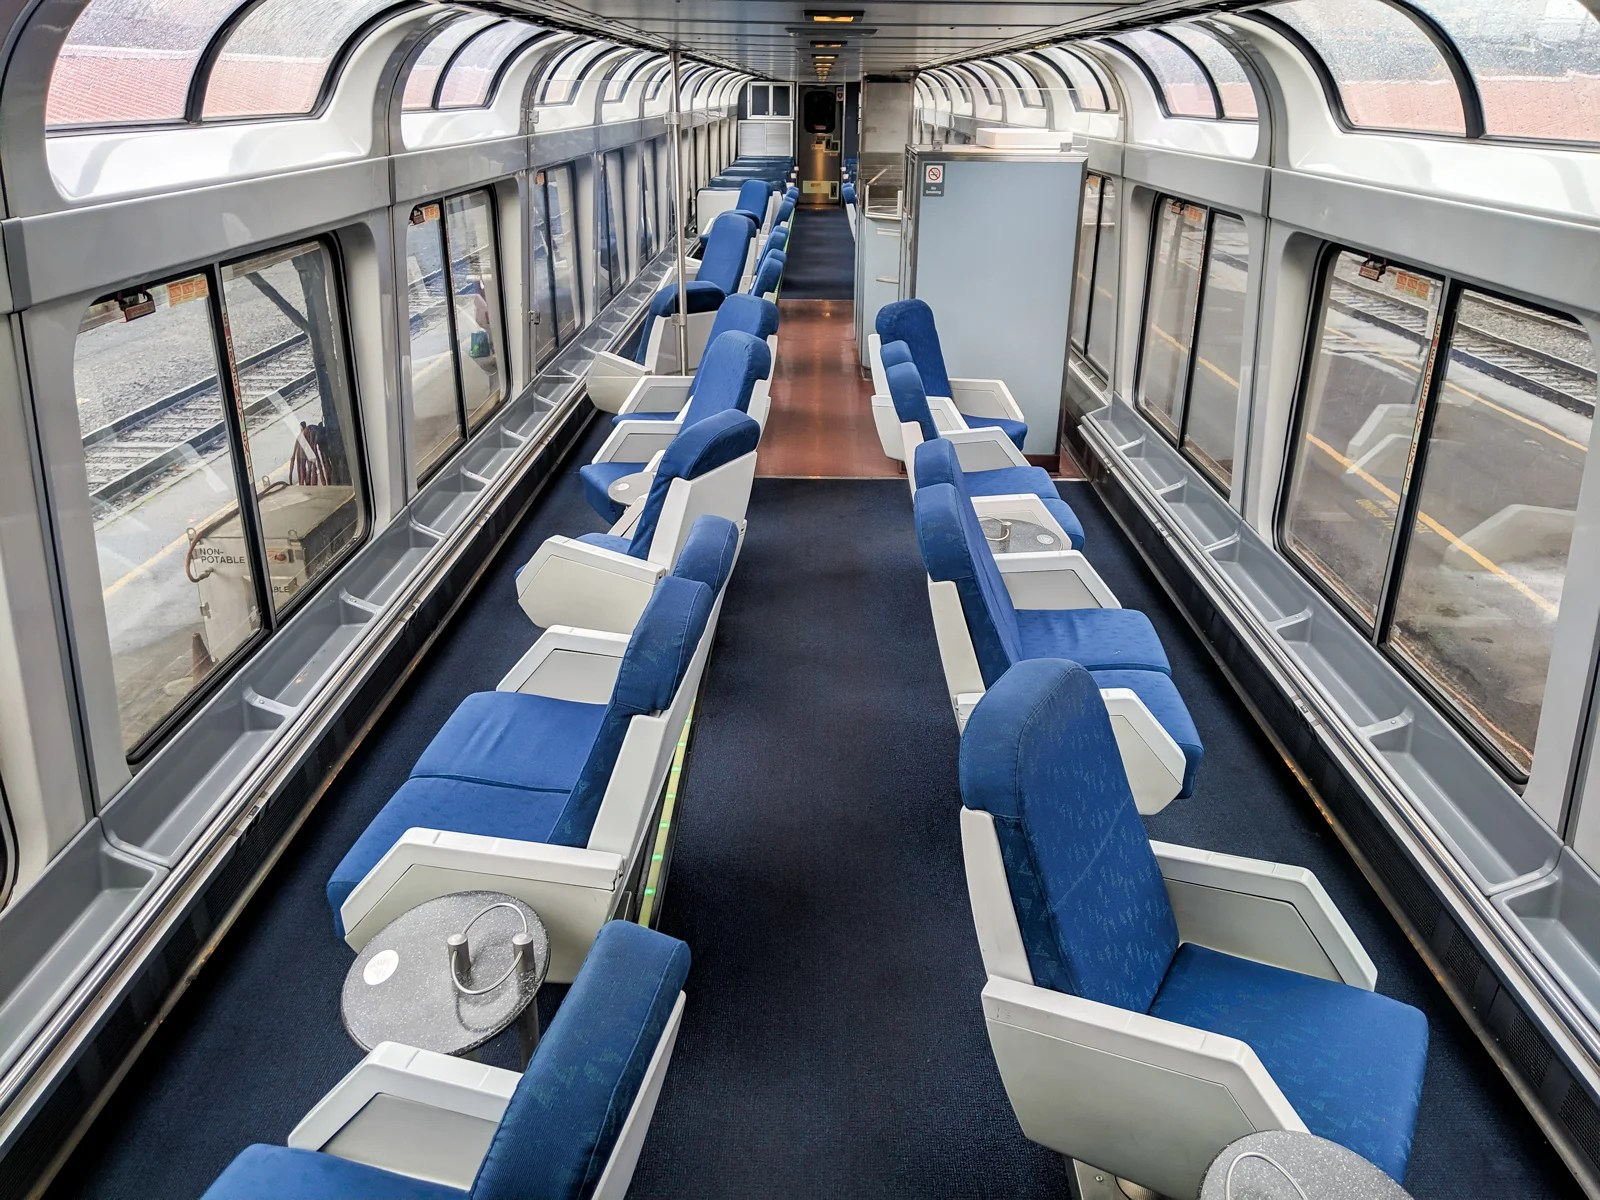 Tips for Making the Most of Your Cross-Country Amtrak